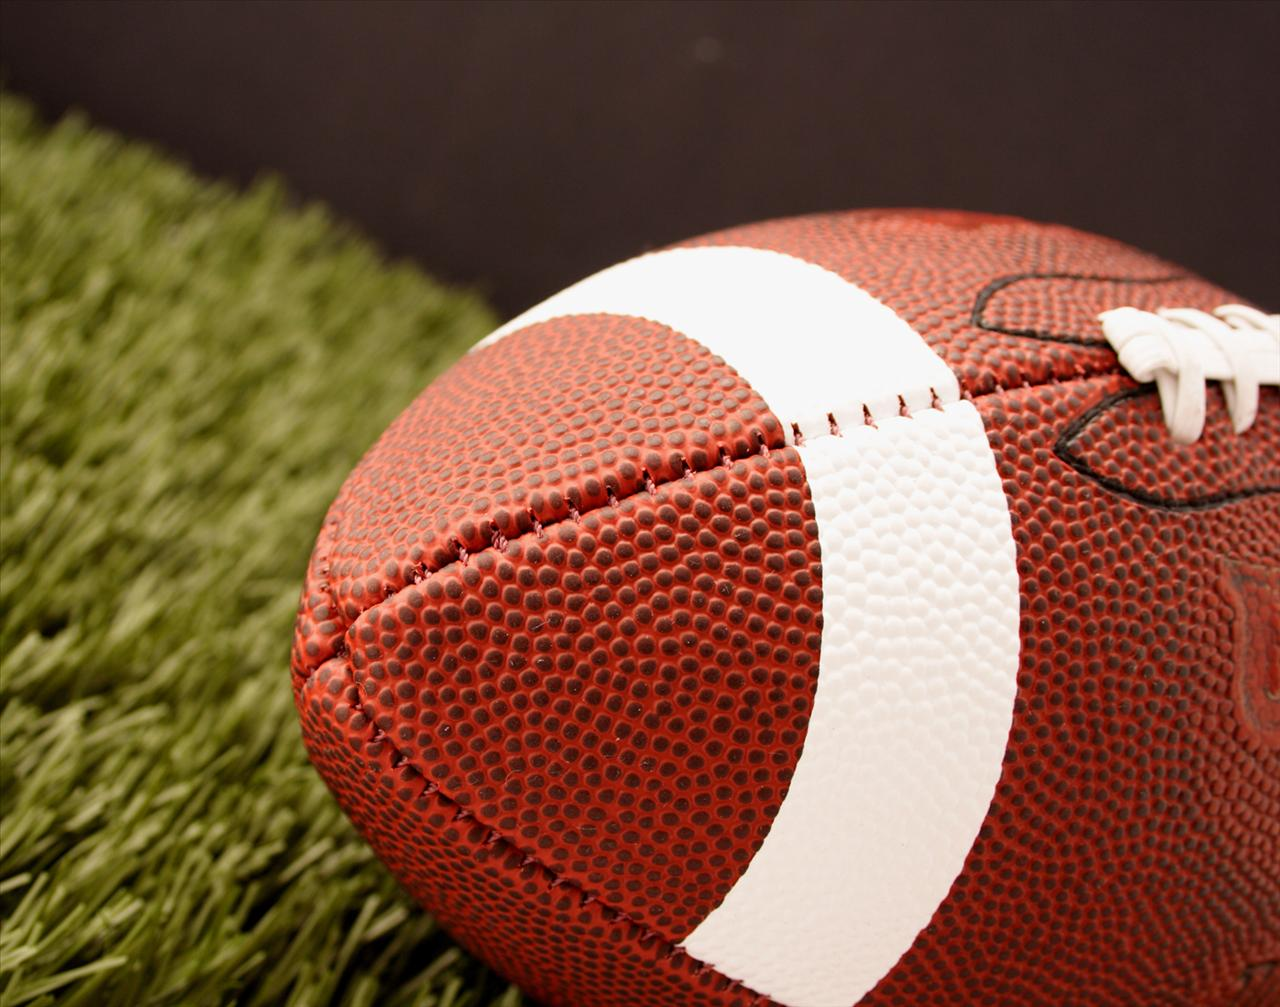 football up close backgrounds wallpapersjpg 1280x1007